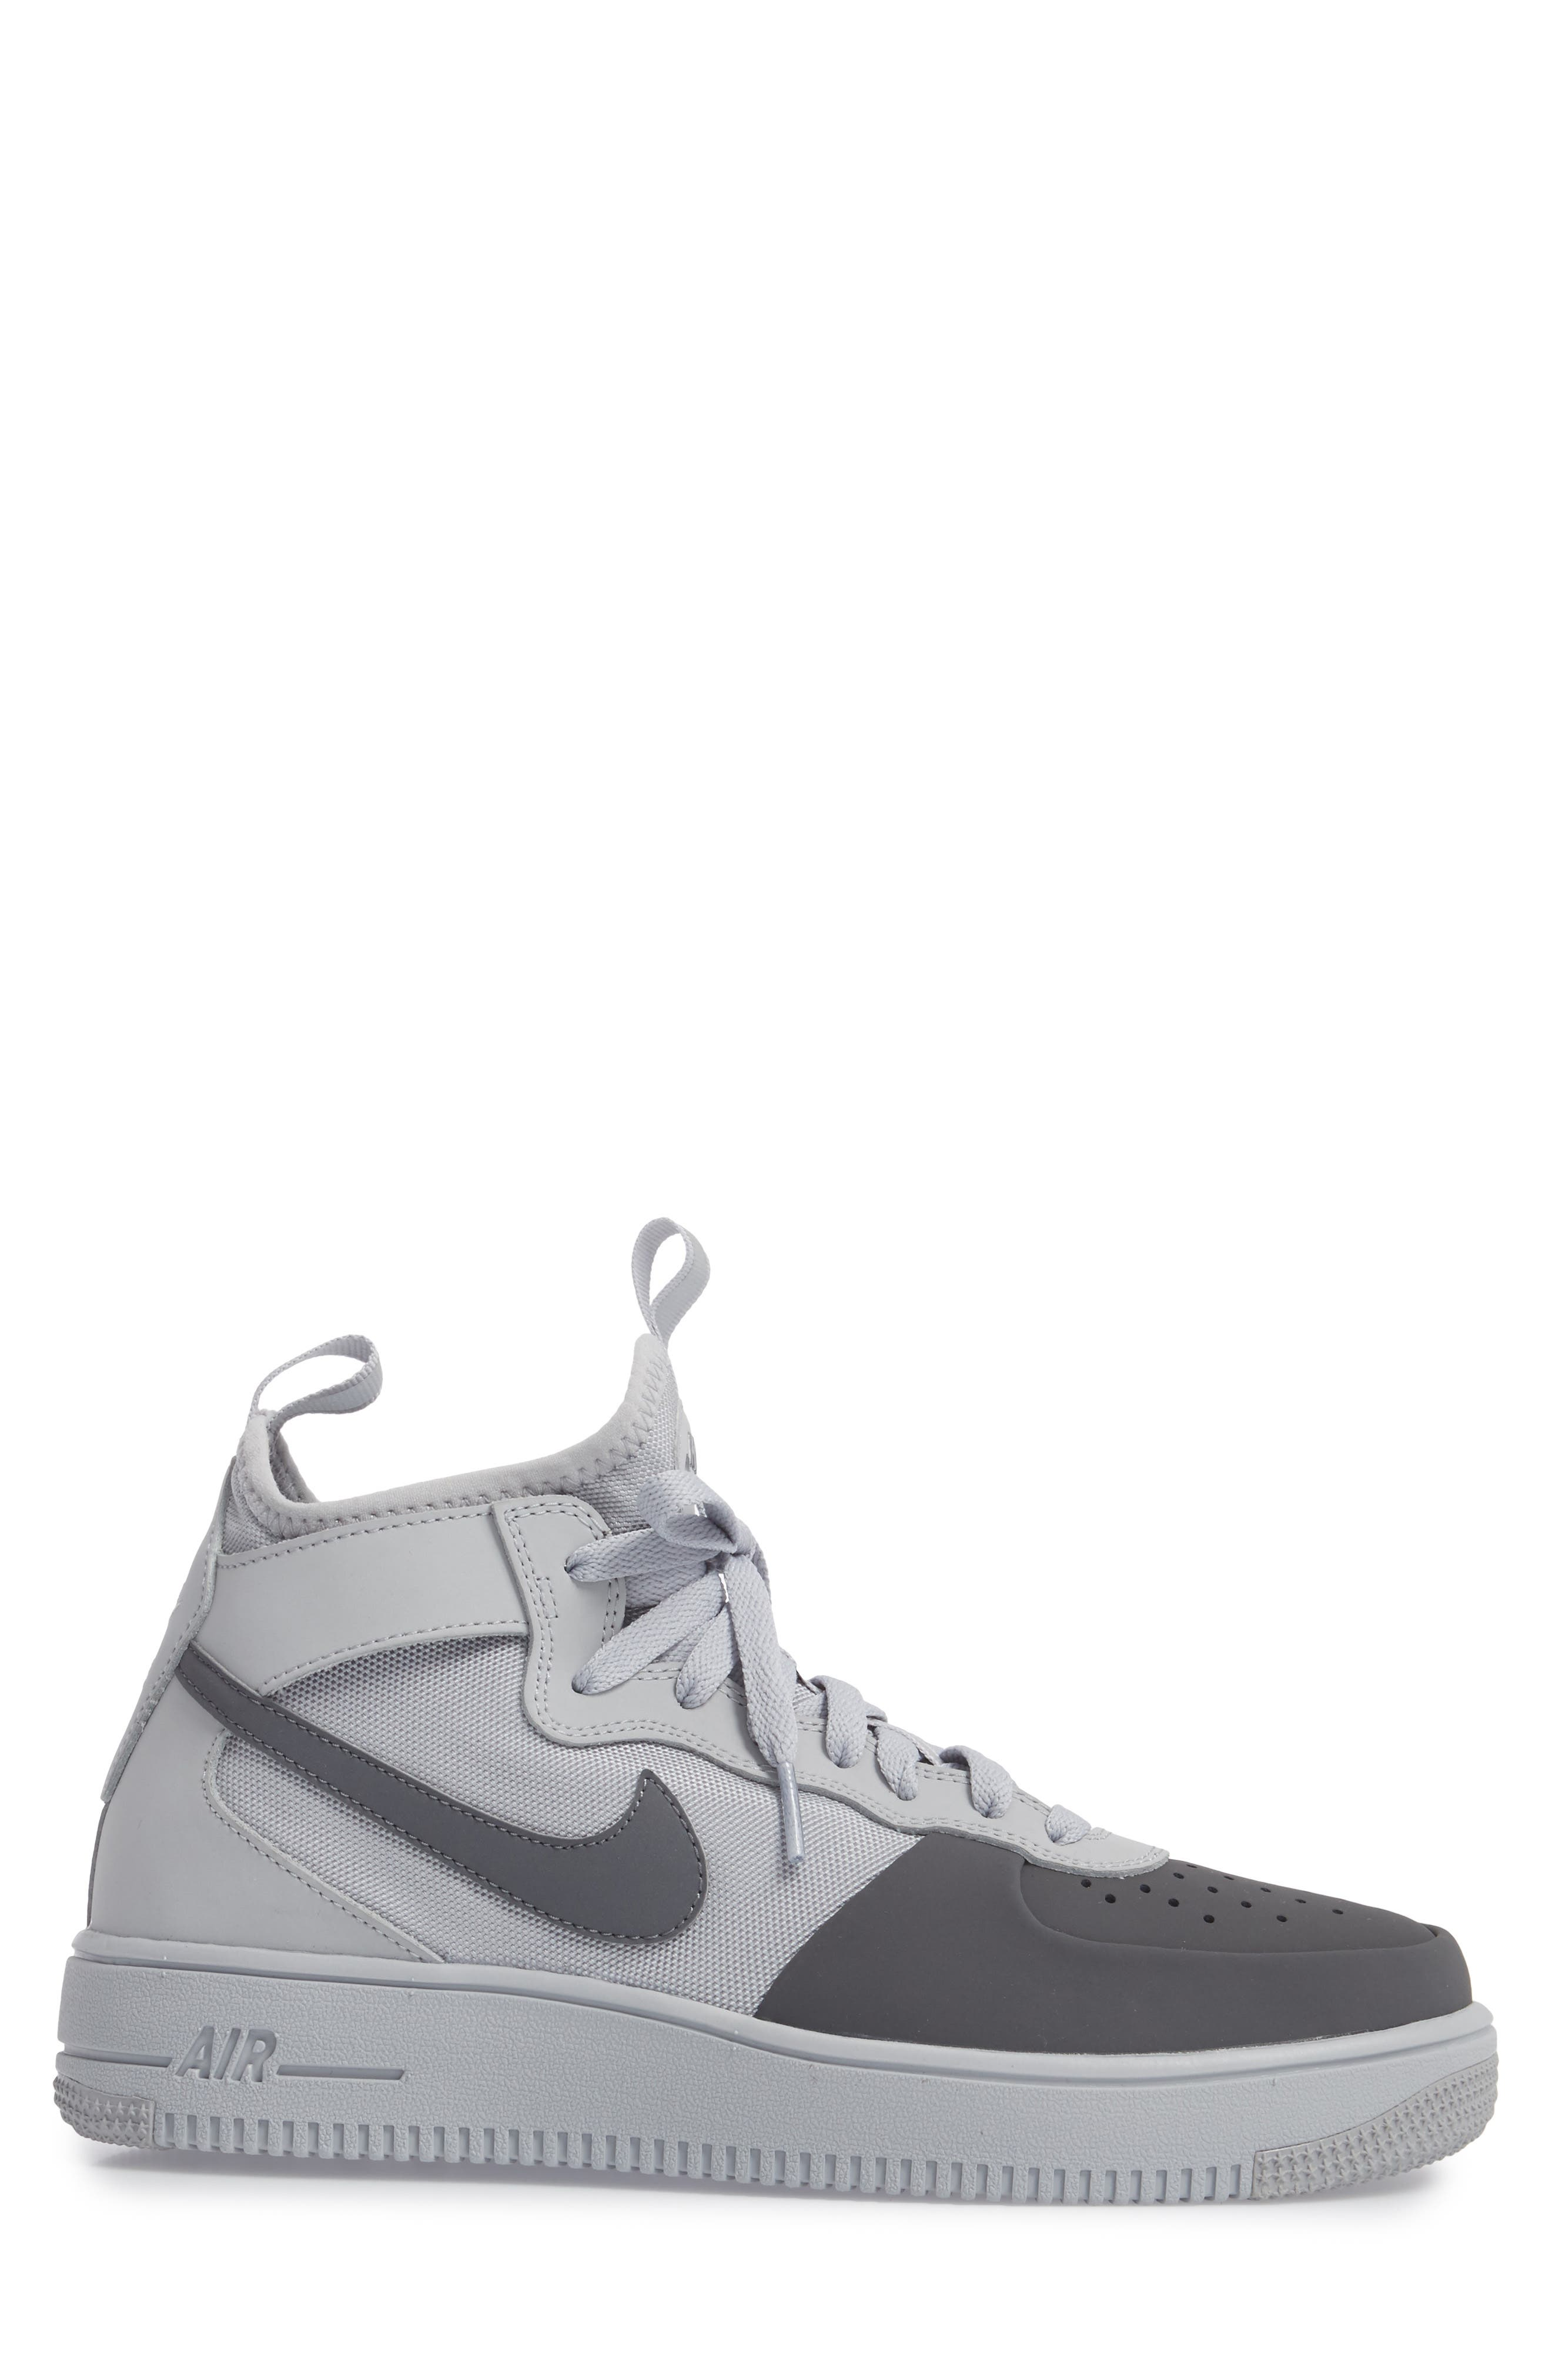 Air Force 1 Ultraforce Mid Tech Sneaker,                             Alternate thumbnail 3, color,                             Wolf Grey/ Dark Grey